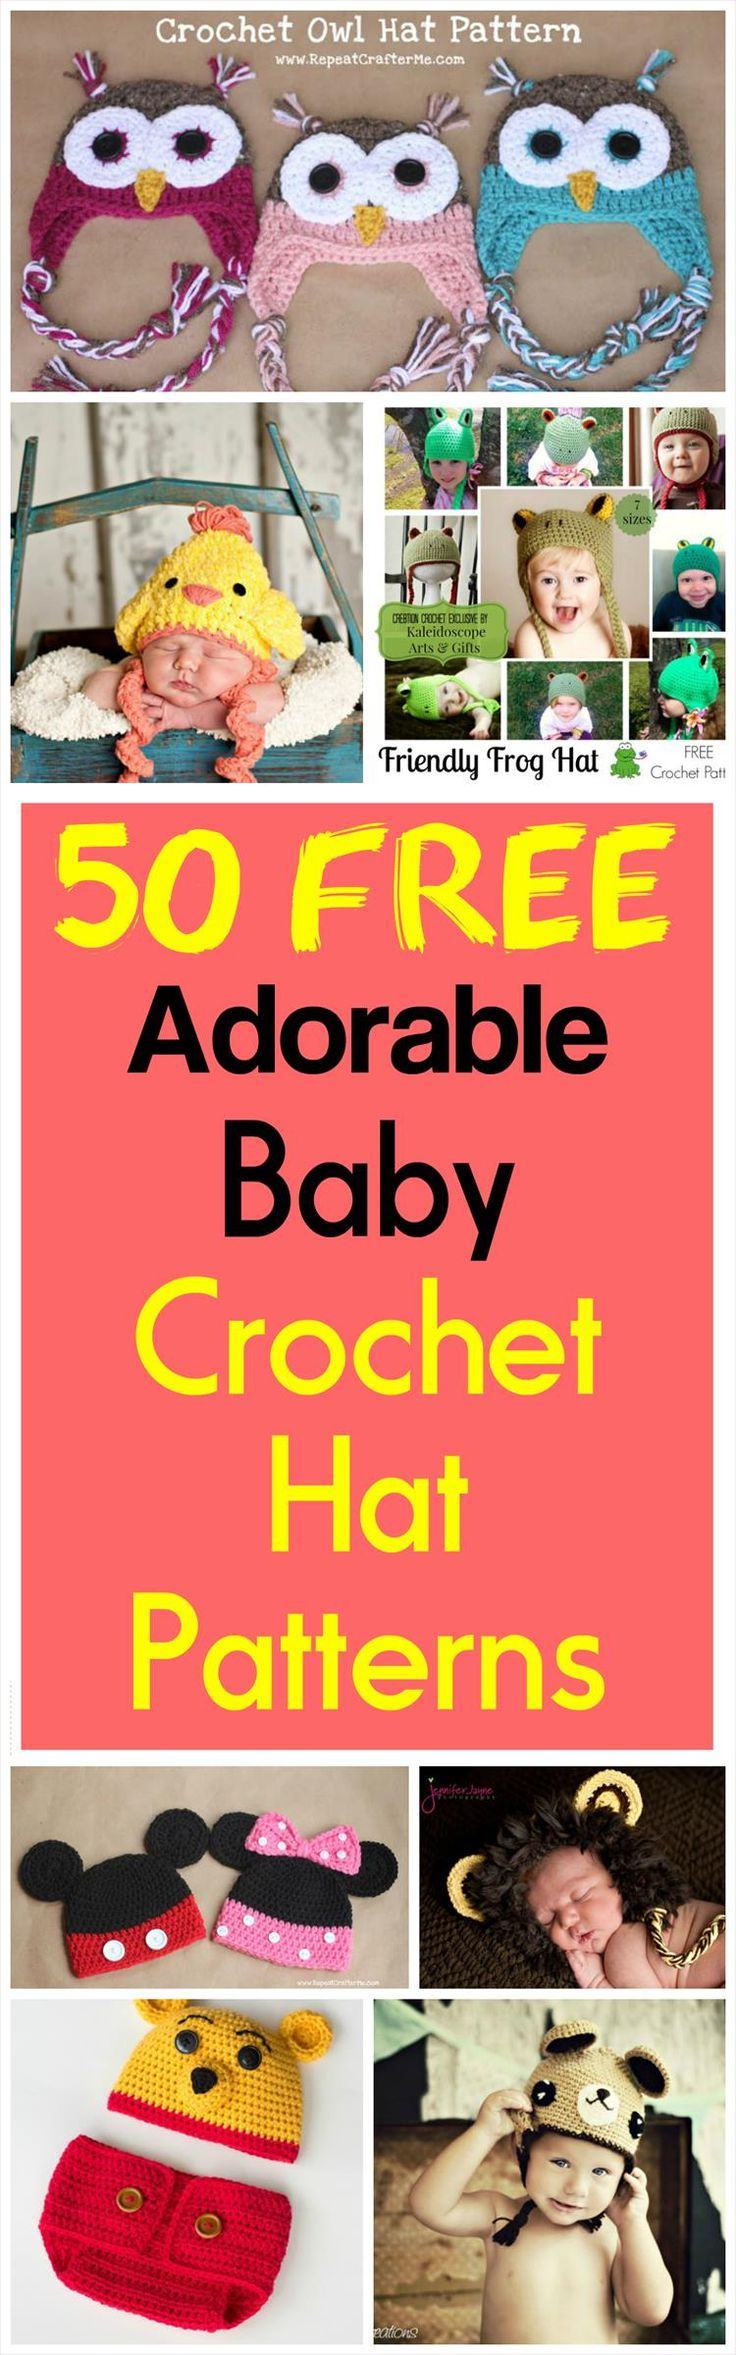 50 Free Adorable Baby Crochet Hat Patterns - DIY and Crafts